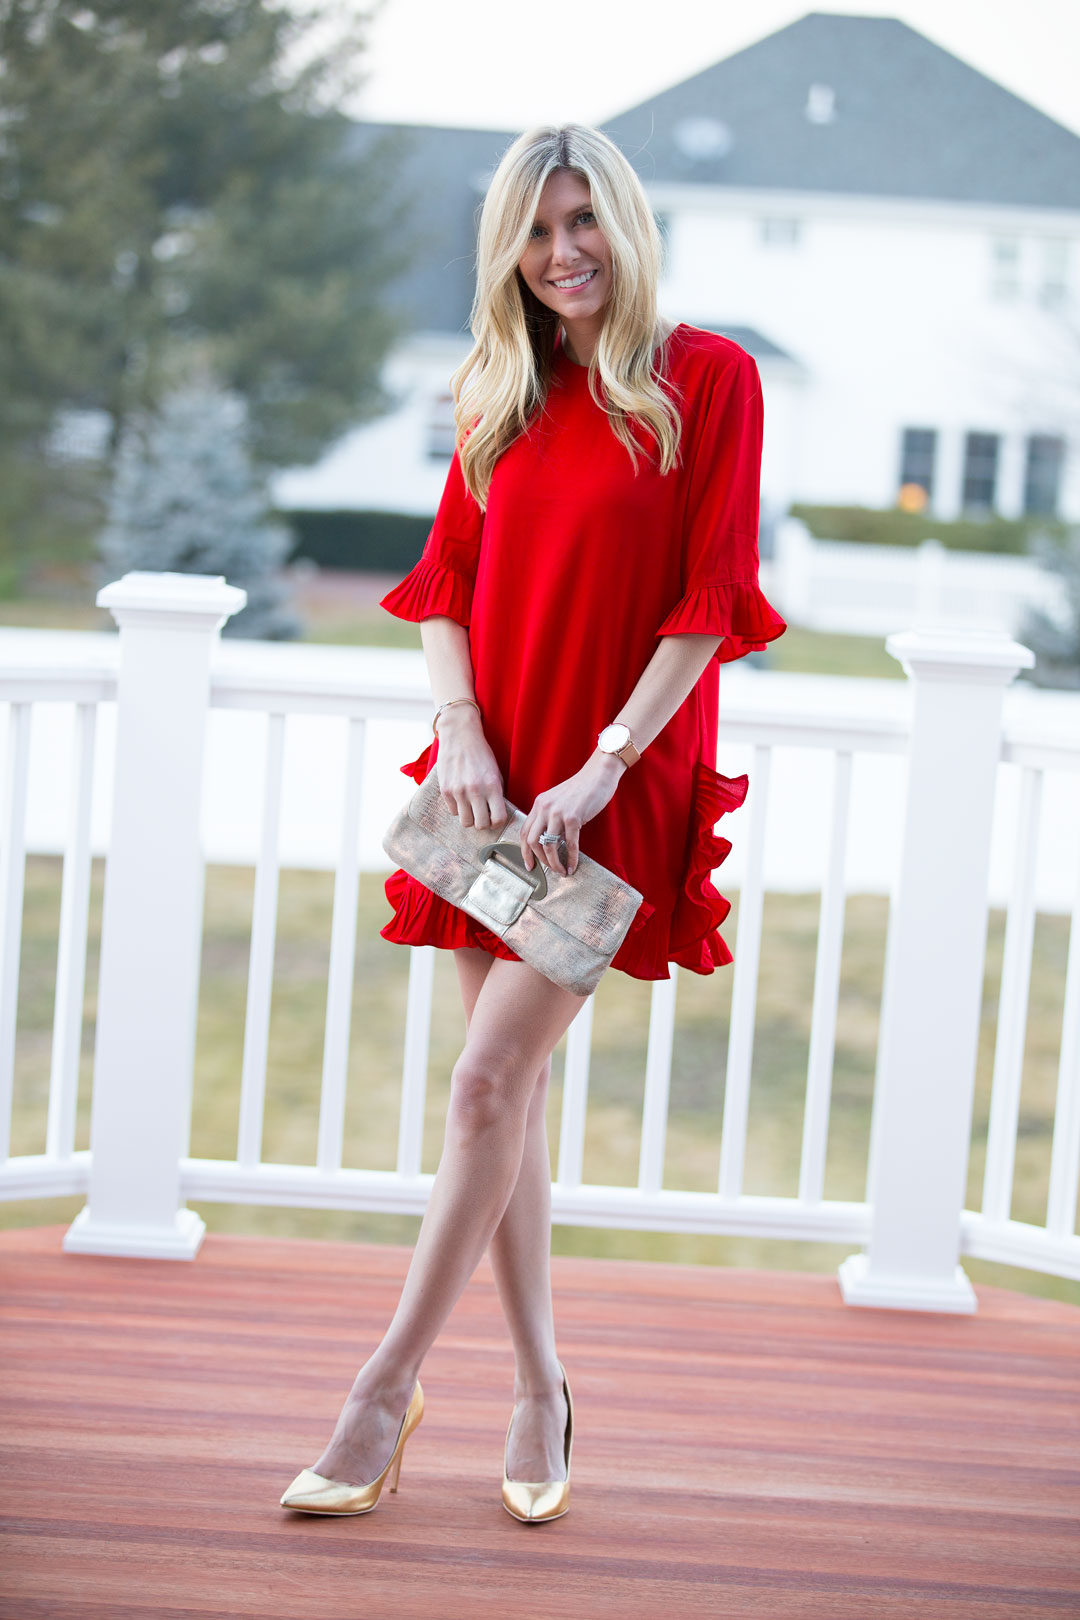 Red Ruffle Dress for Valentine's Day | The Glamorous Gal